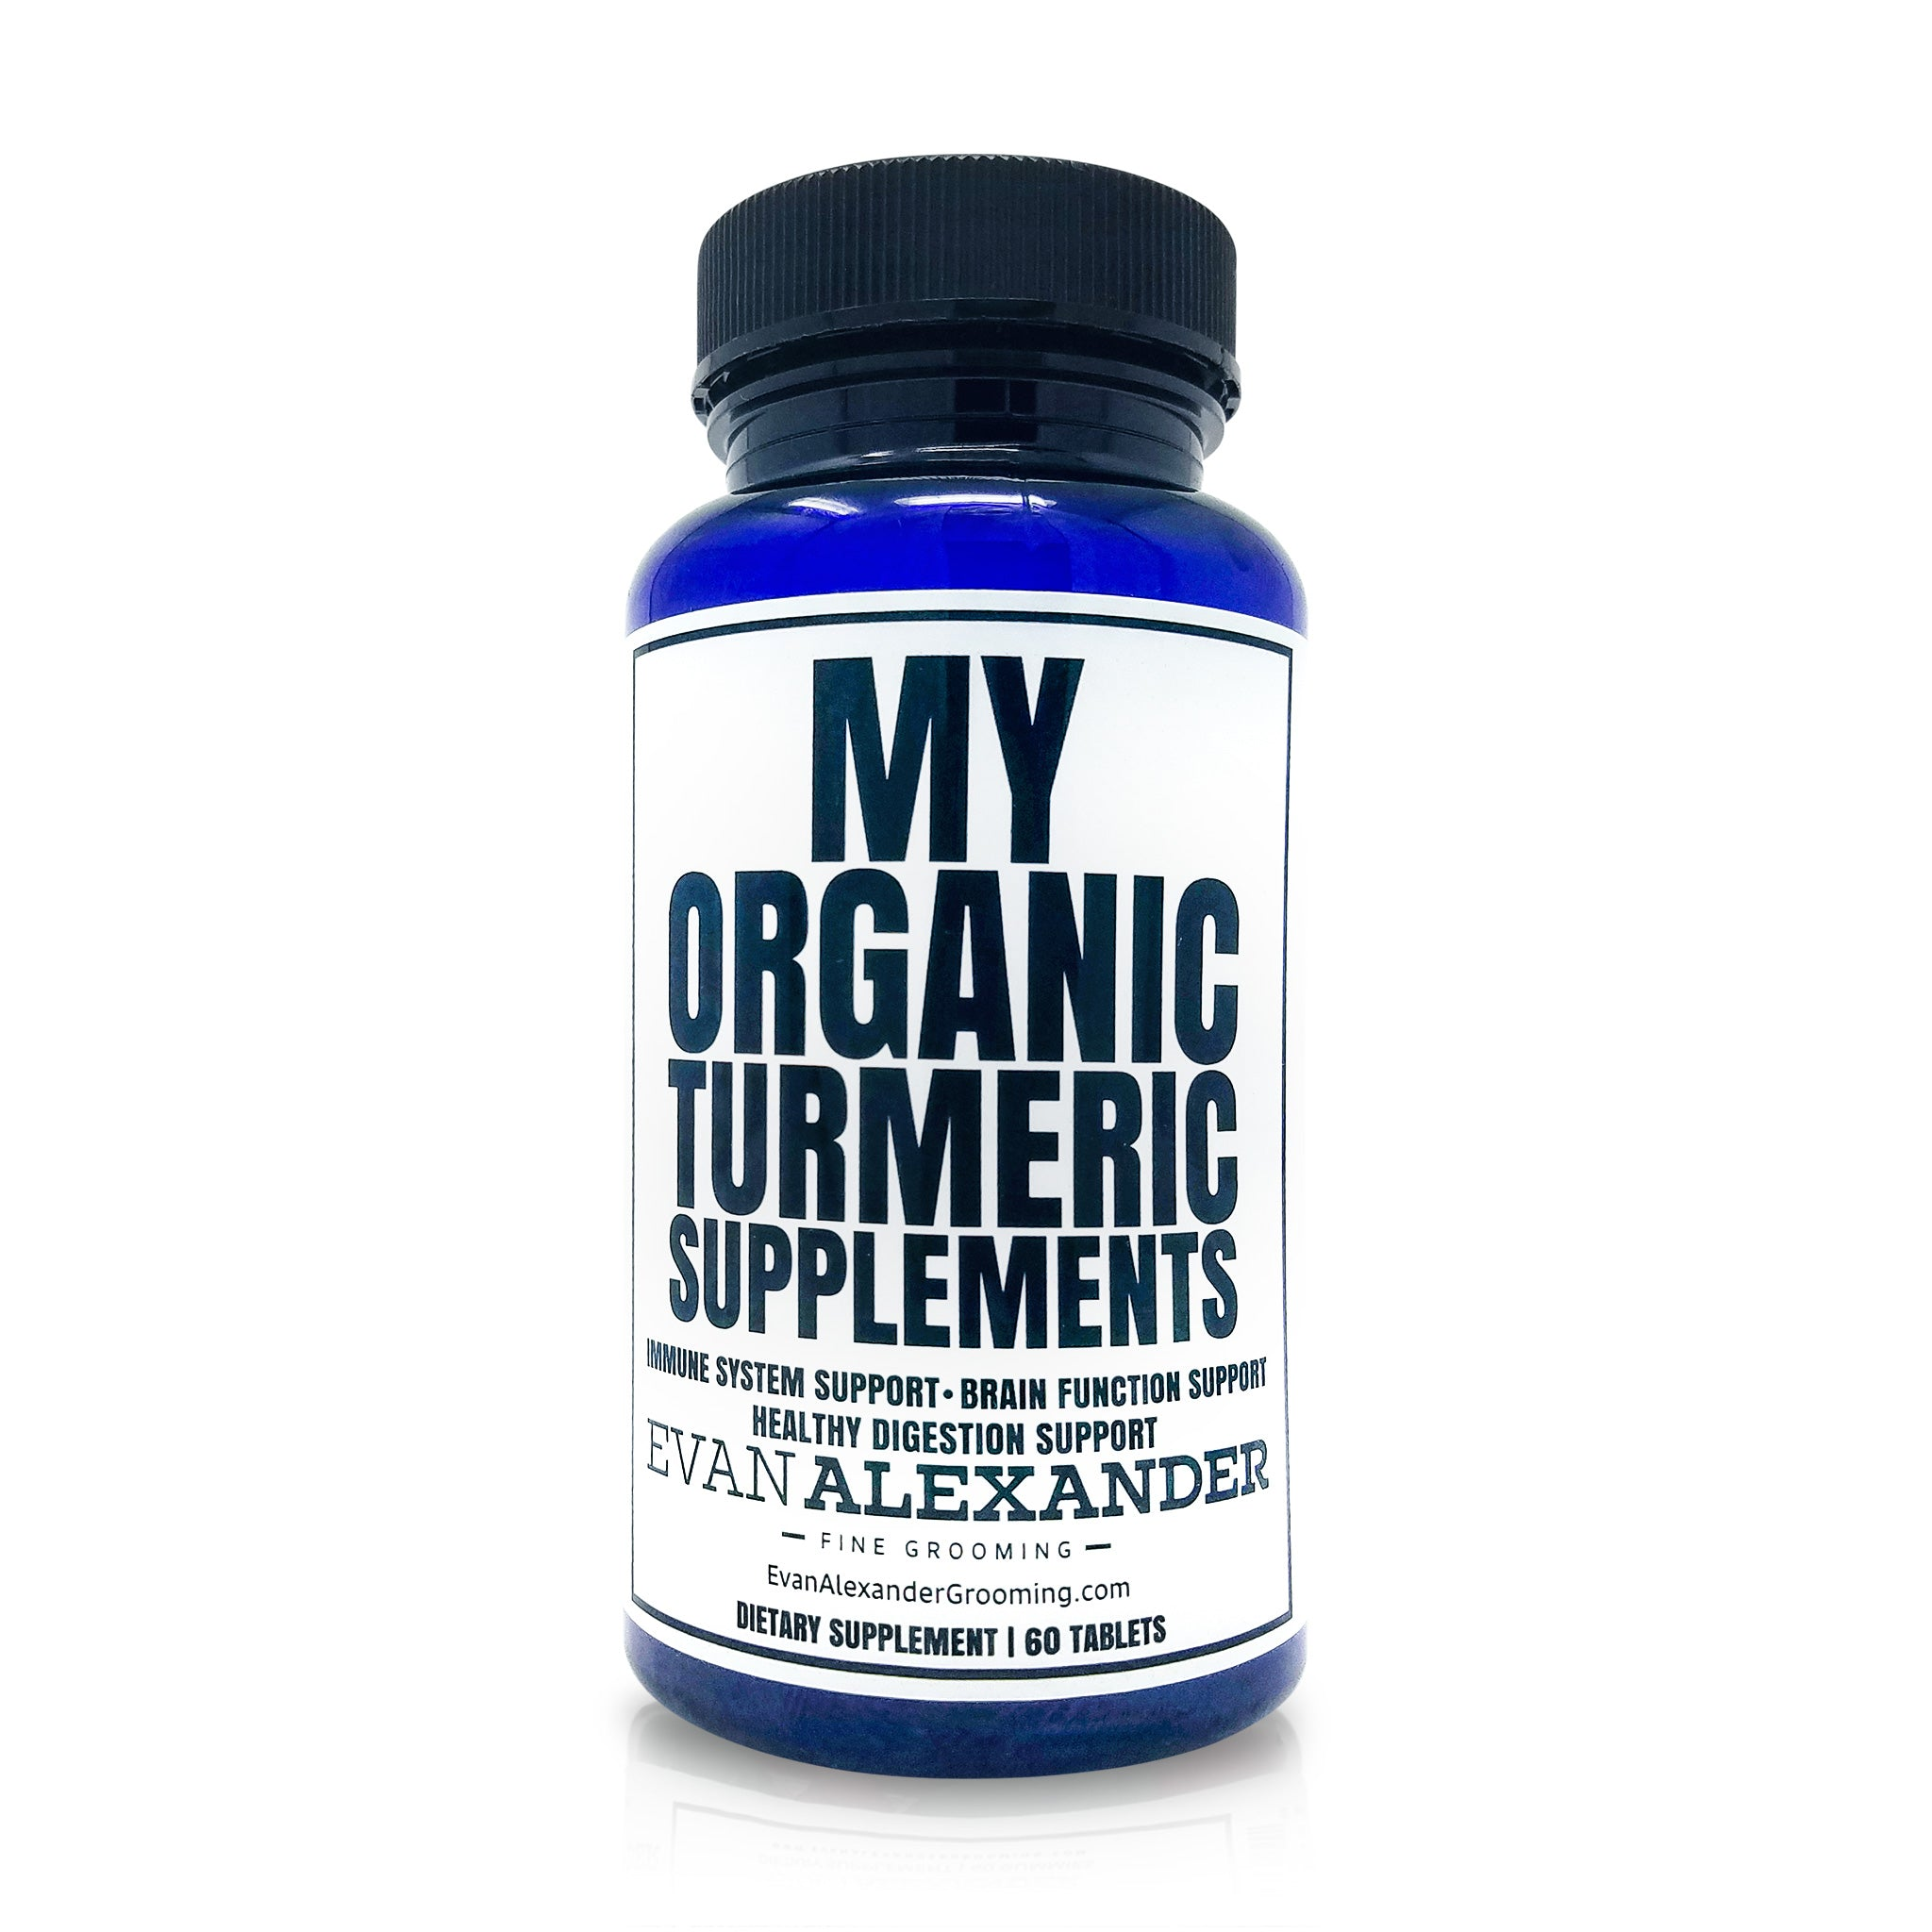 MY ORGANIC TURMERIC SUPPLEMENTS